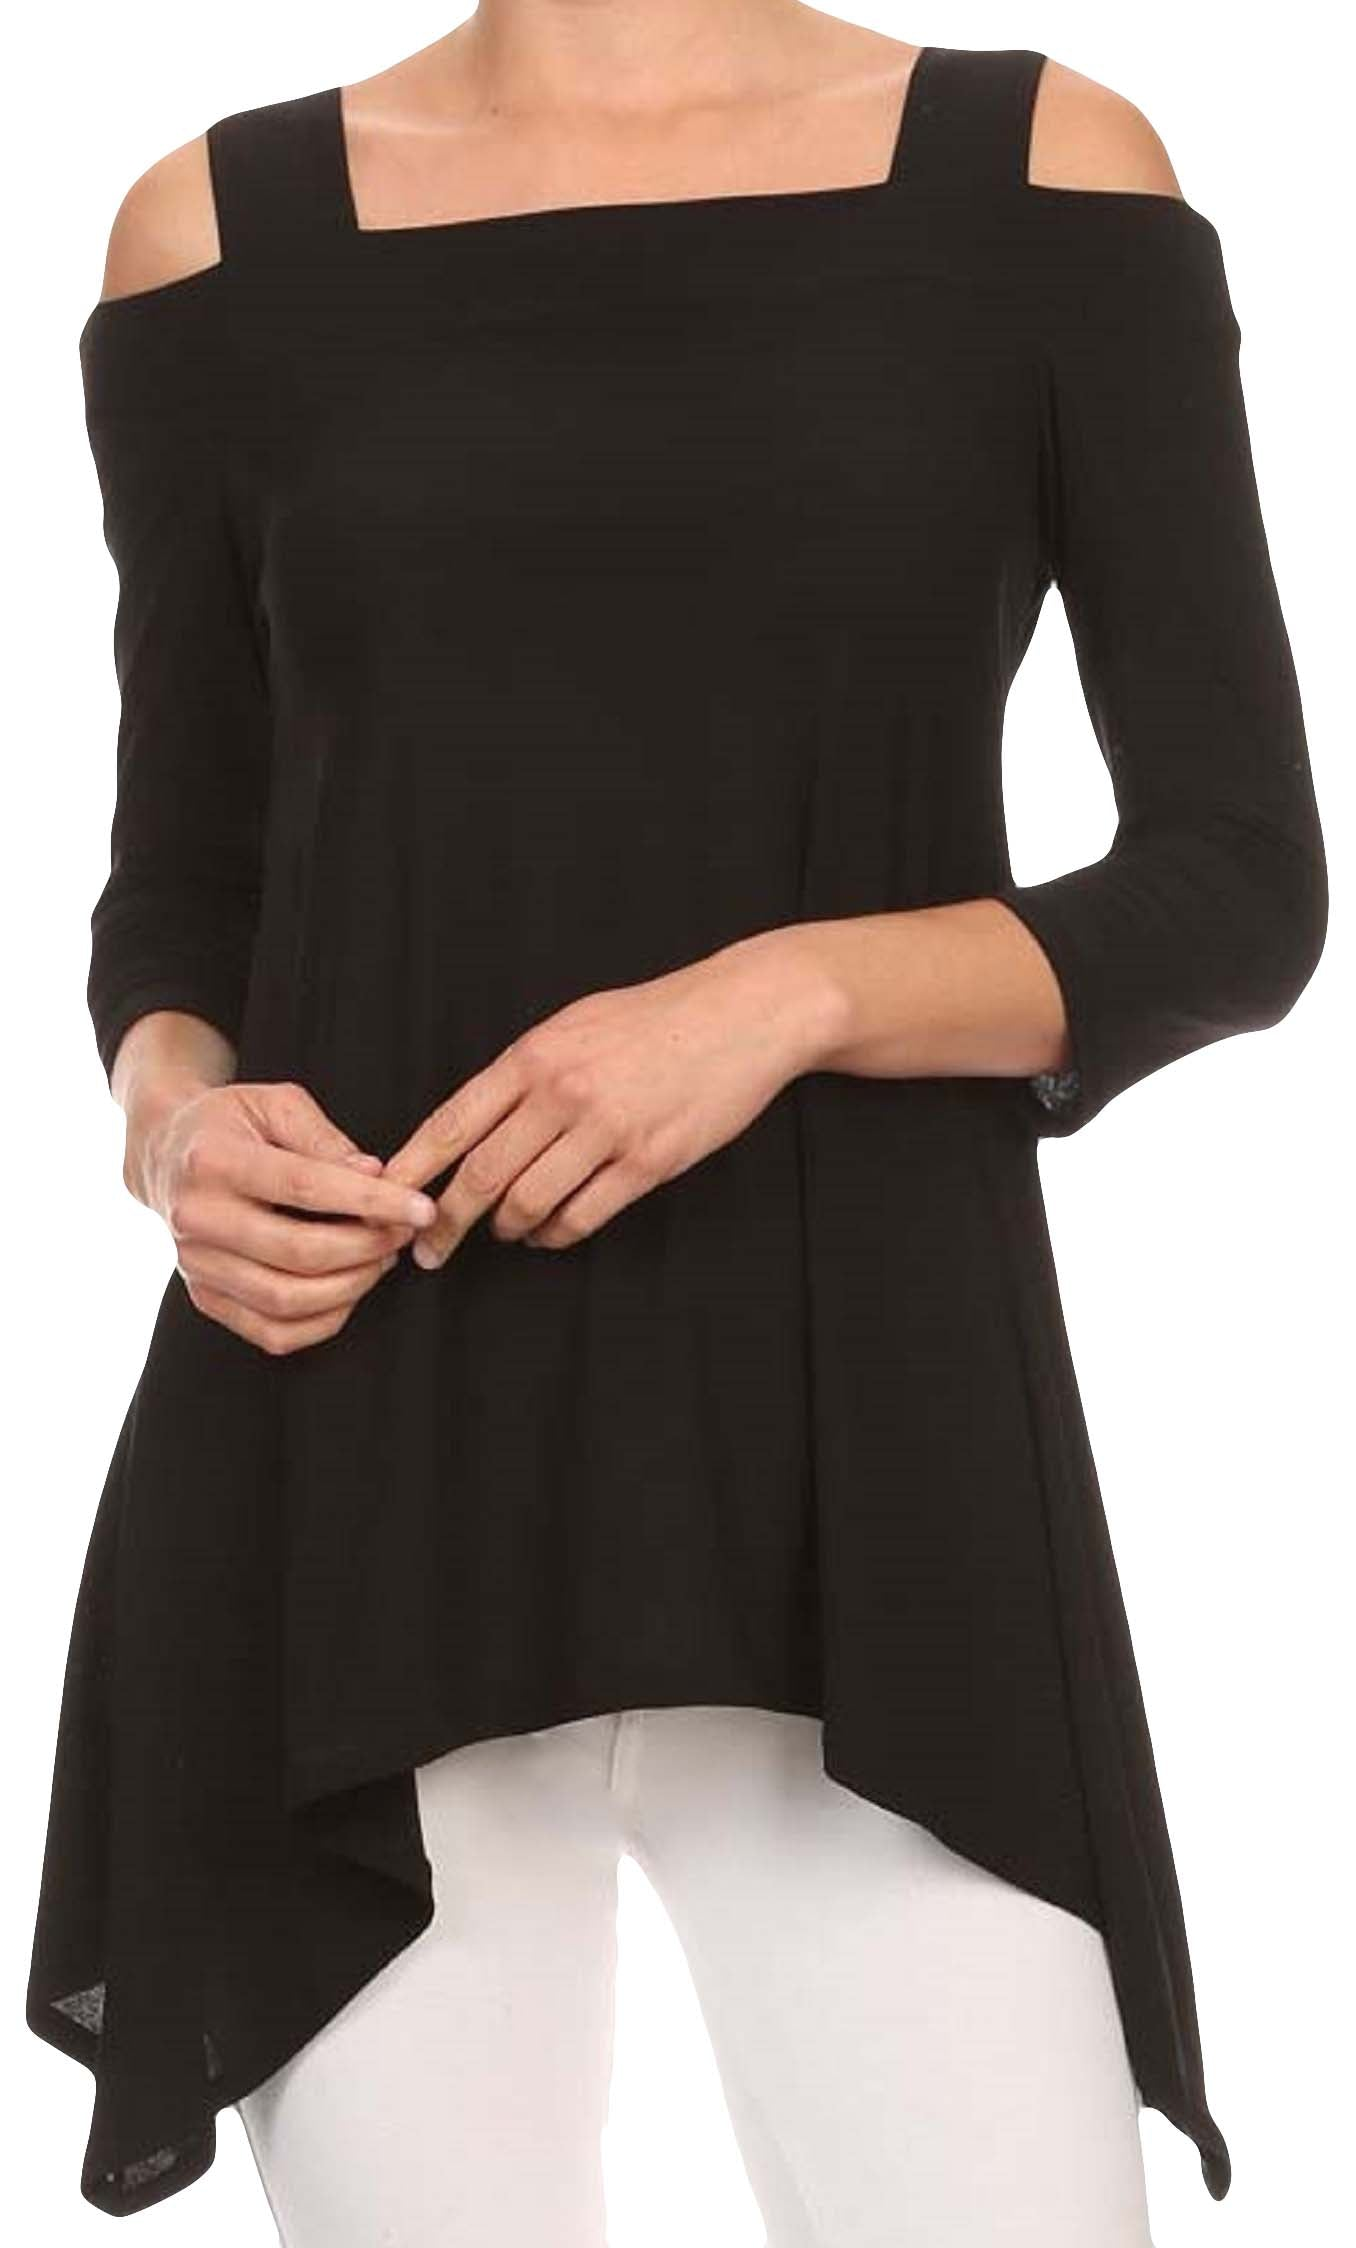 Moraea Womens Cold Shoulder Tunic Shirt | Solid Black,Shirts,Moraea - Discount Divas